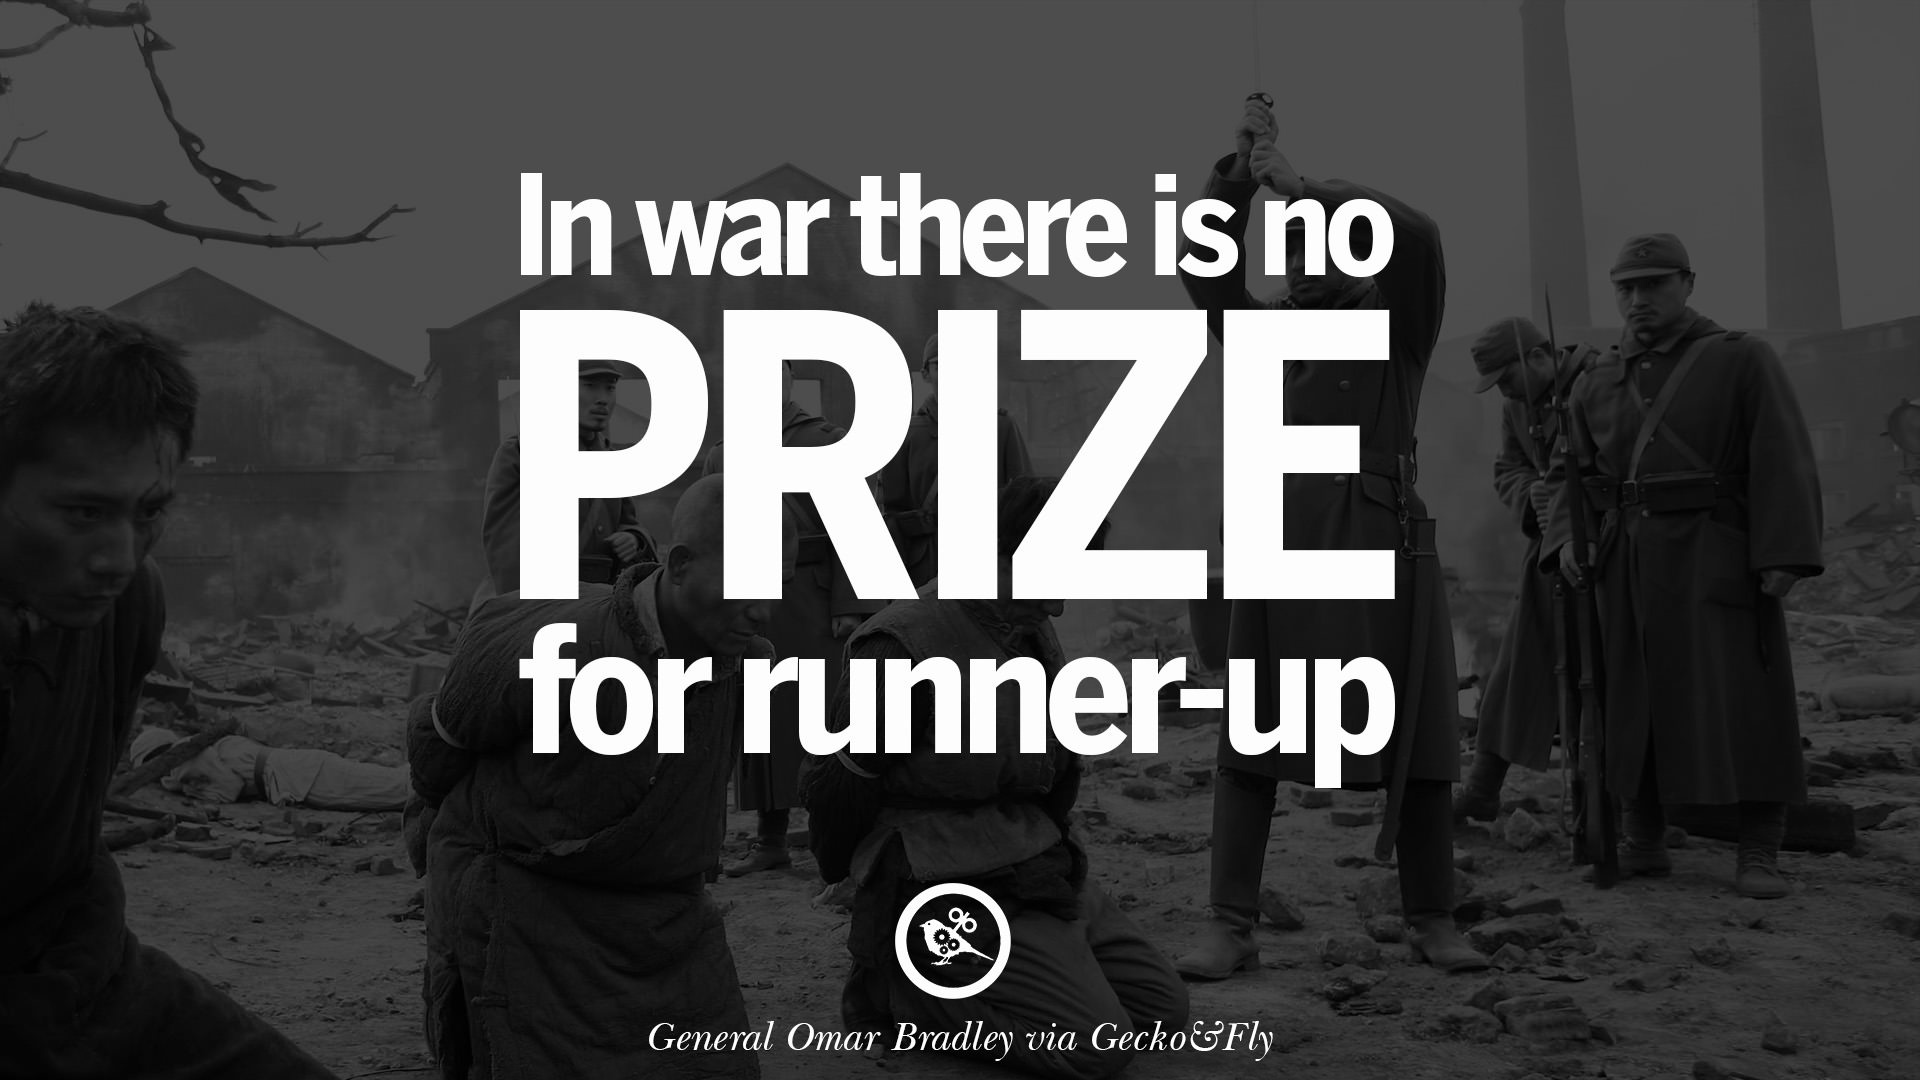 Famous Quotes 10 Famous Quotes About War On World Peace Death Violence